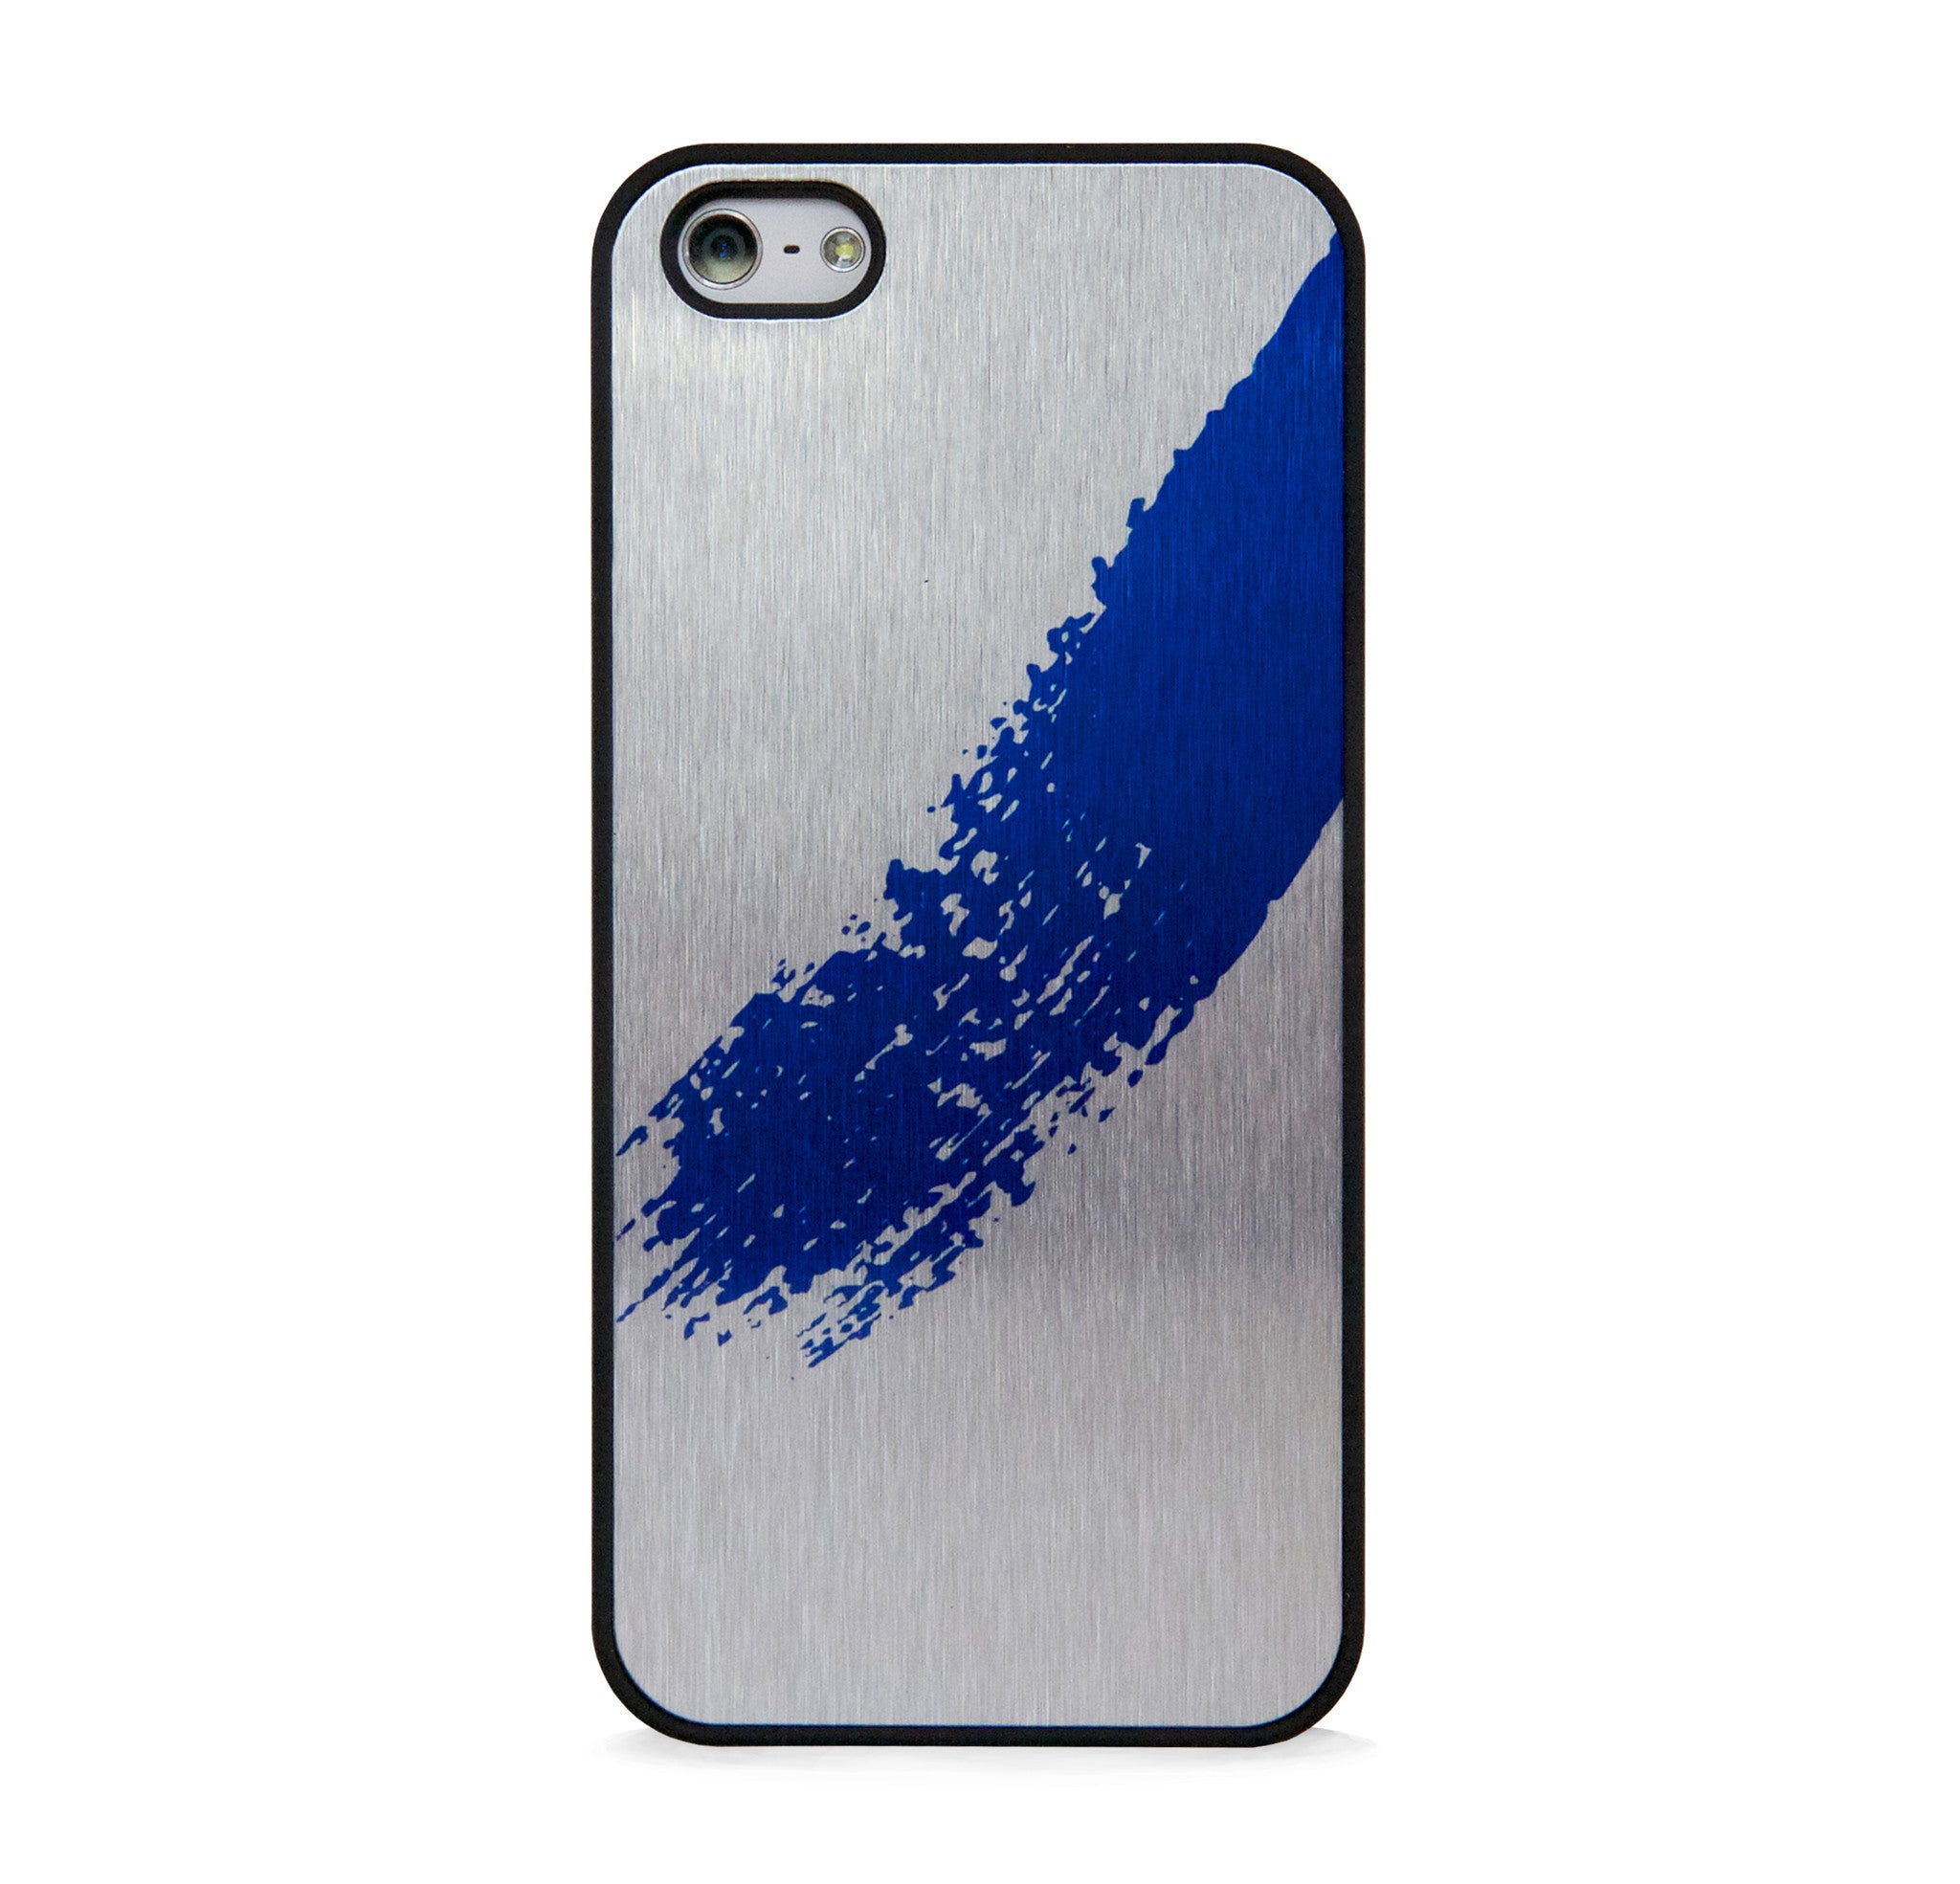 STYLISH CALLIGRAPHY BLUE ON SILVER FOR IPHONE 5/5S, IPHONE SE